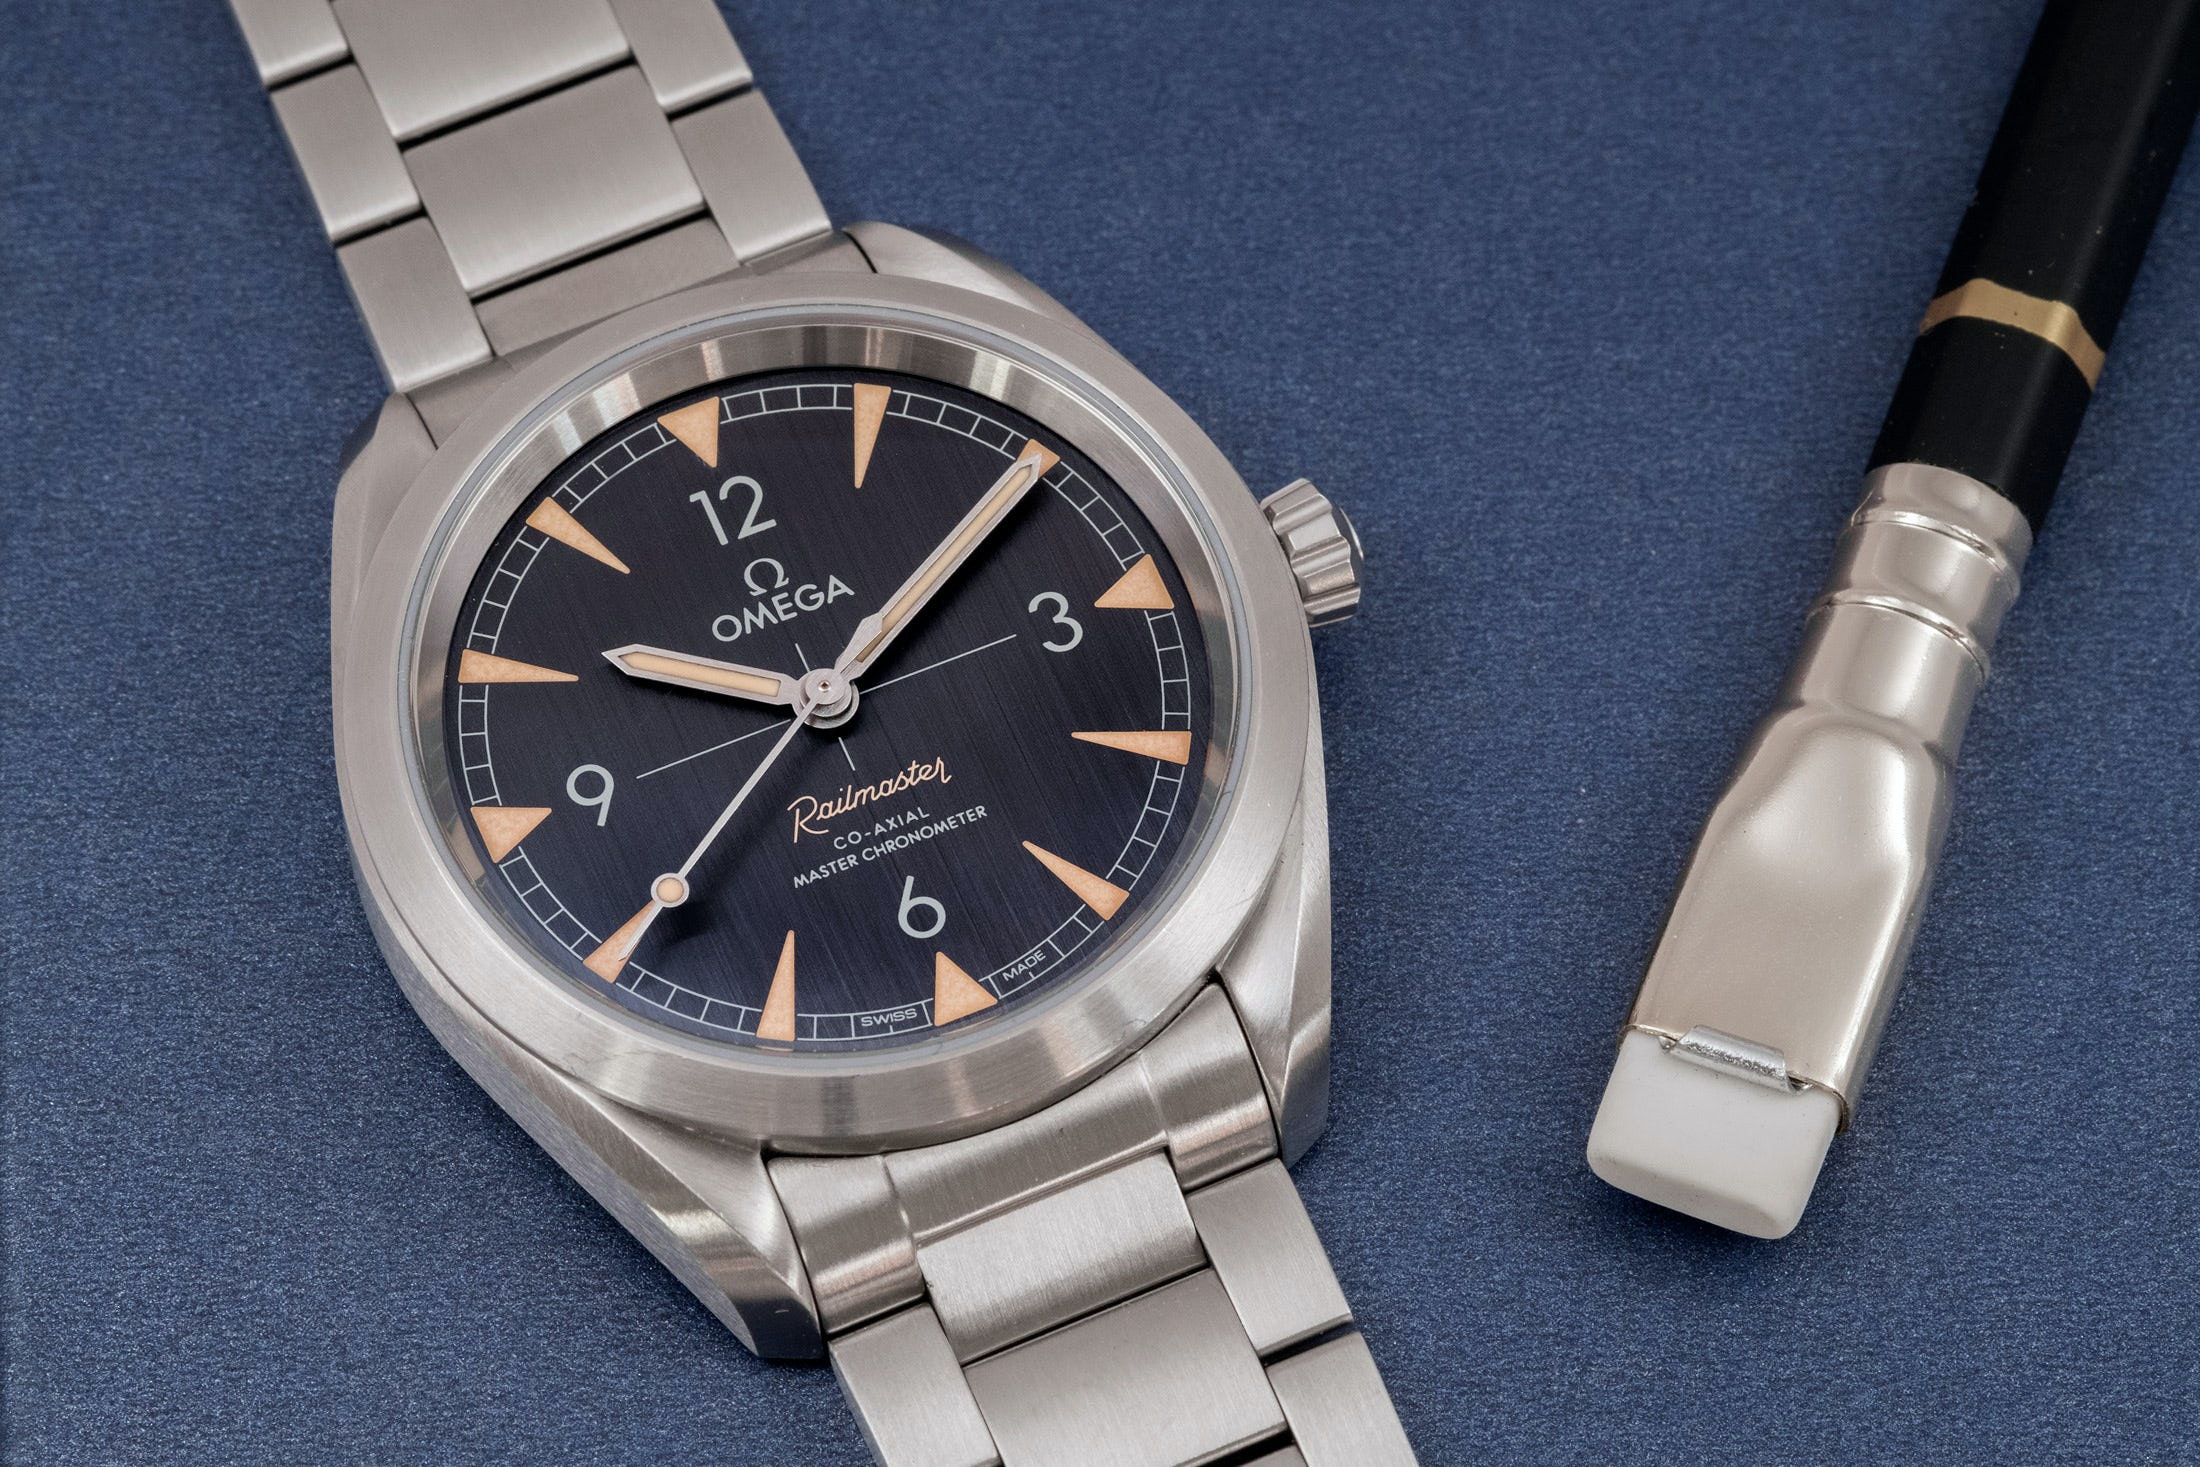 A Week On The Wrist: The Omega Seamaster Railmaster A Week On The Wrist: The Omega Seamaster Railmaster DSCF6141